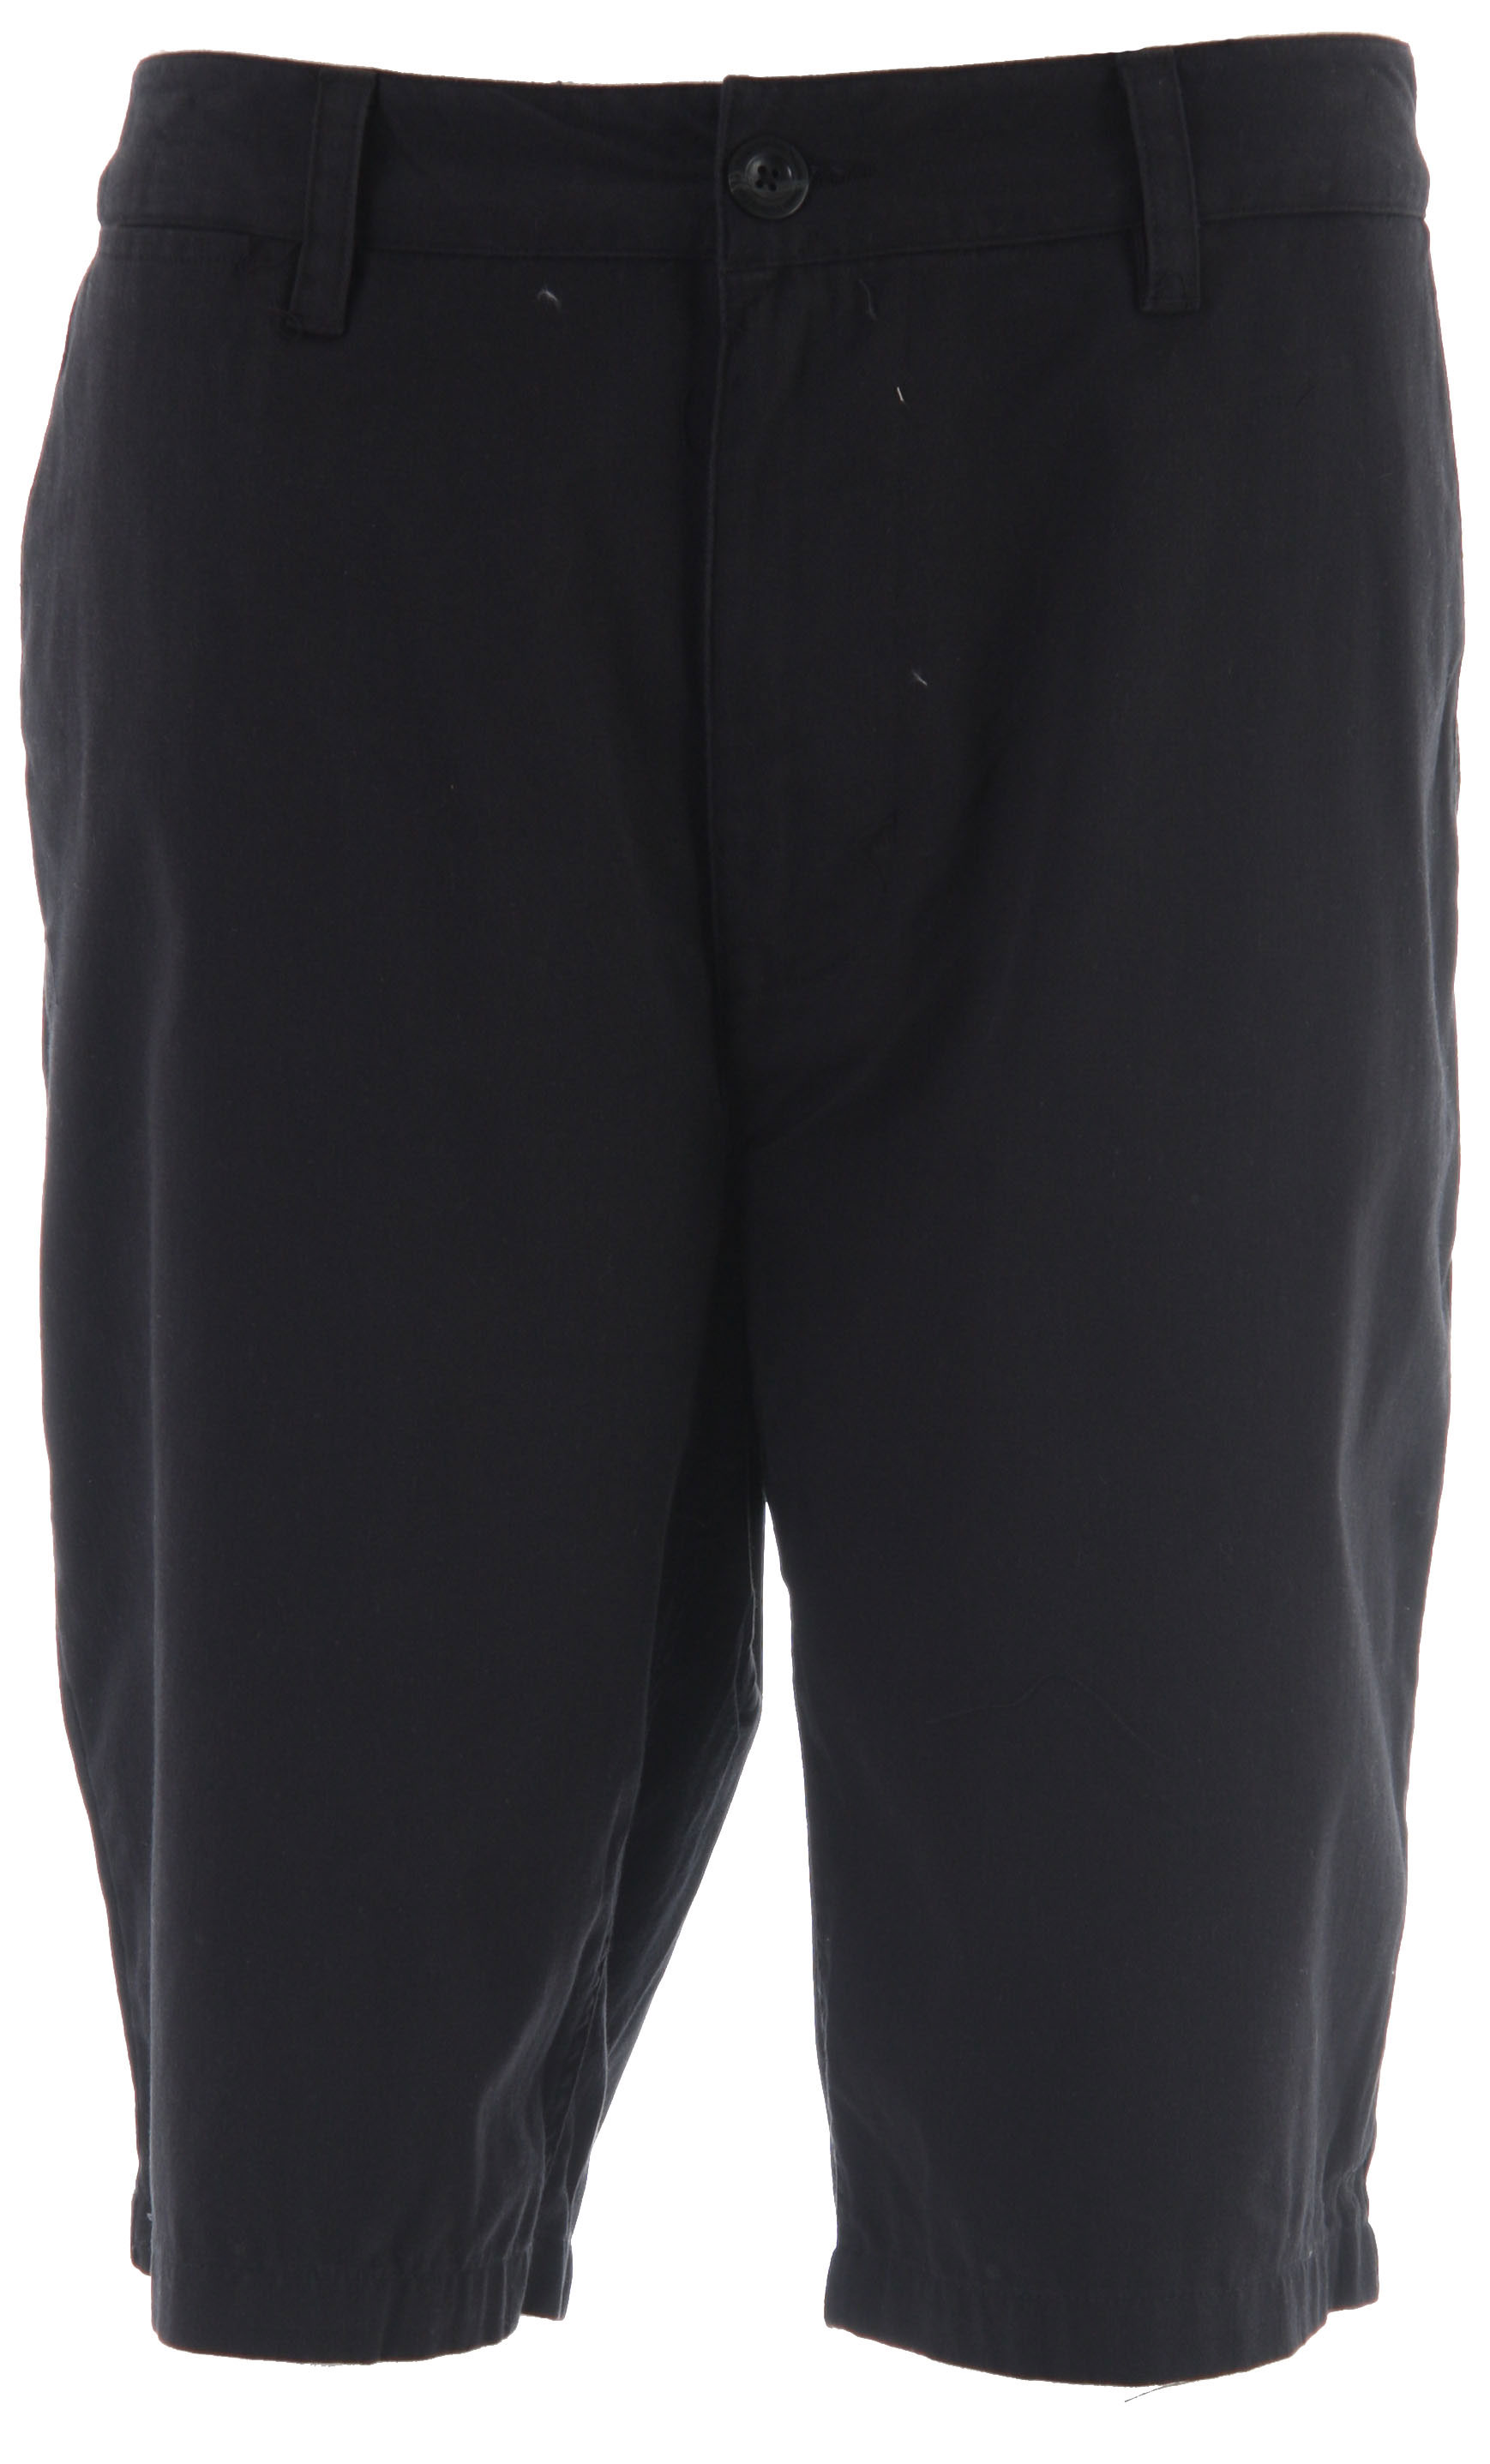 "Key Features of the Analog AG Chino Shorts: 22"" Outseam 55% Cotton 45% Polyester - $28.95"